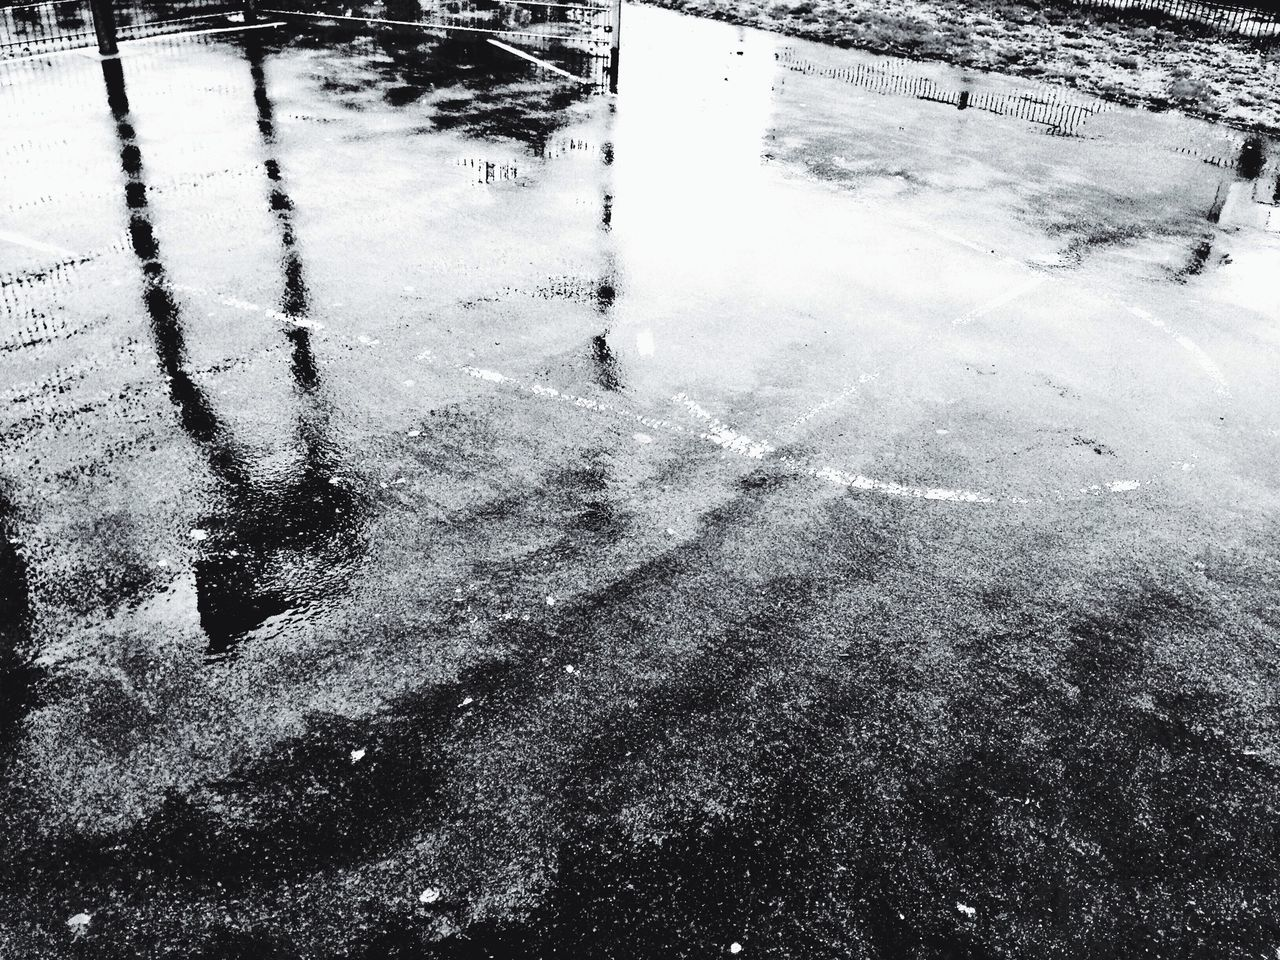 Mp-mission: Your District View Rain Reflection Bw_collection Puddleography